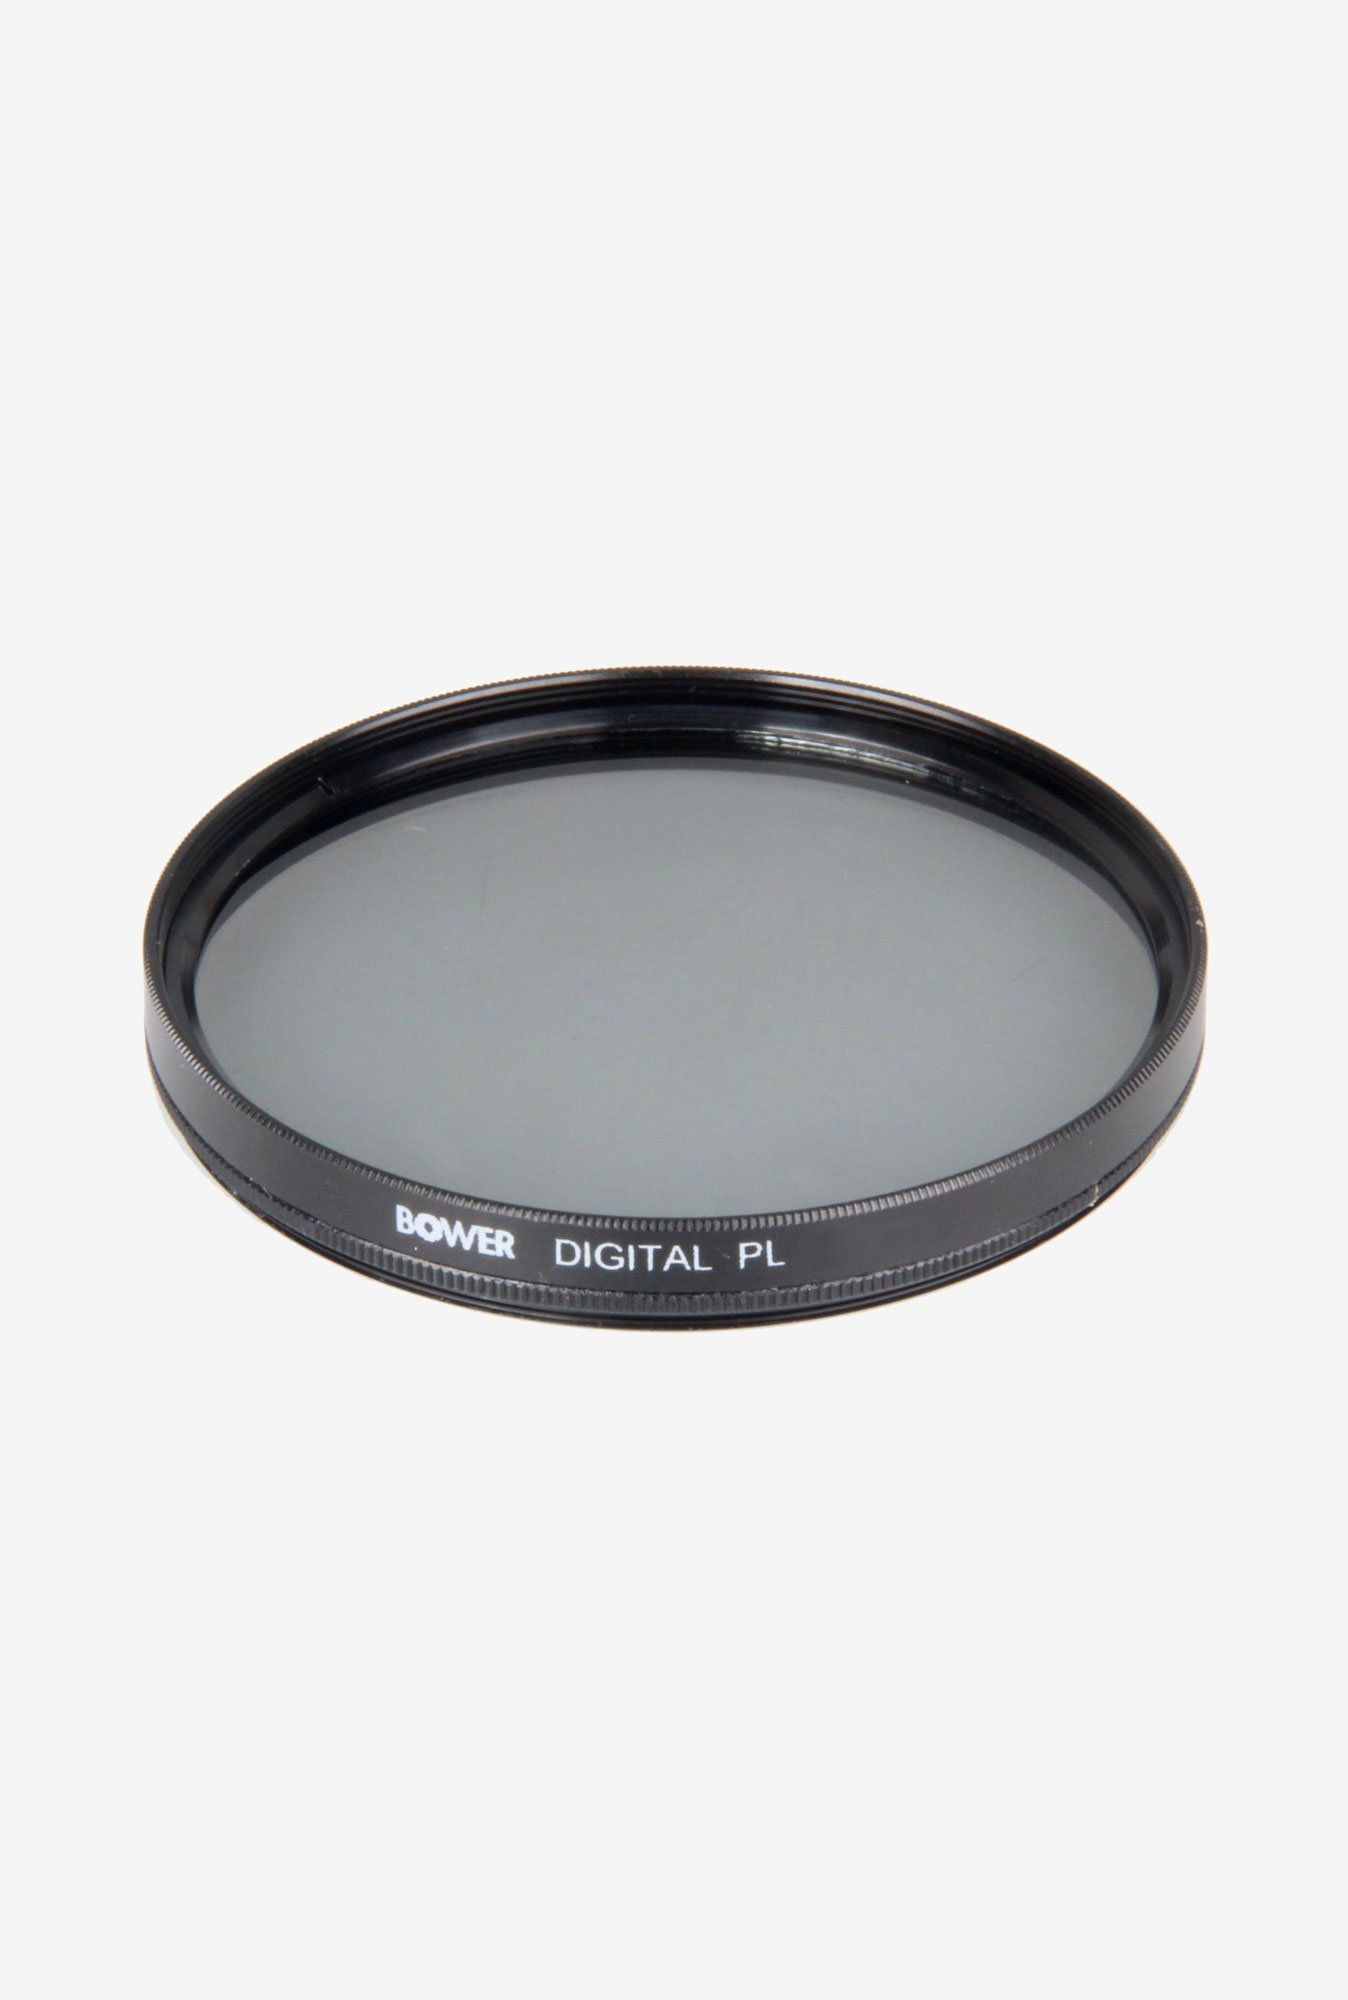 Bower FPC77 Digital High-Definition 77mm Polarizer Filter